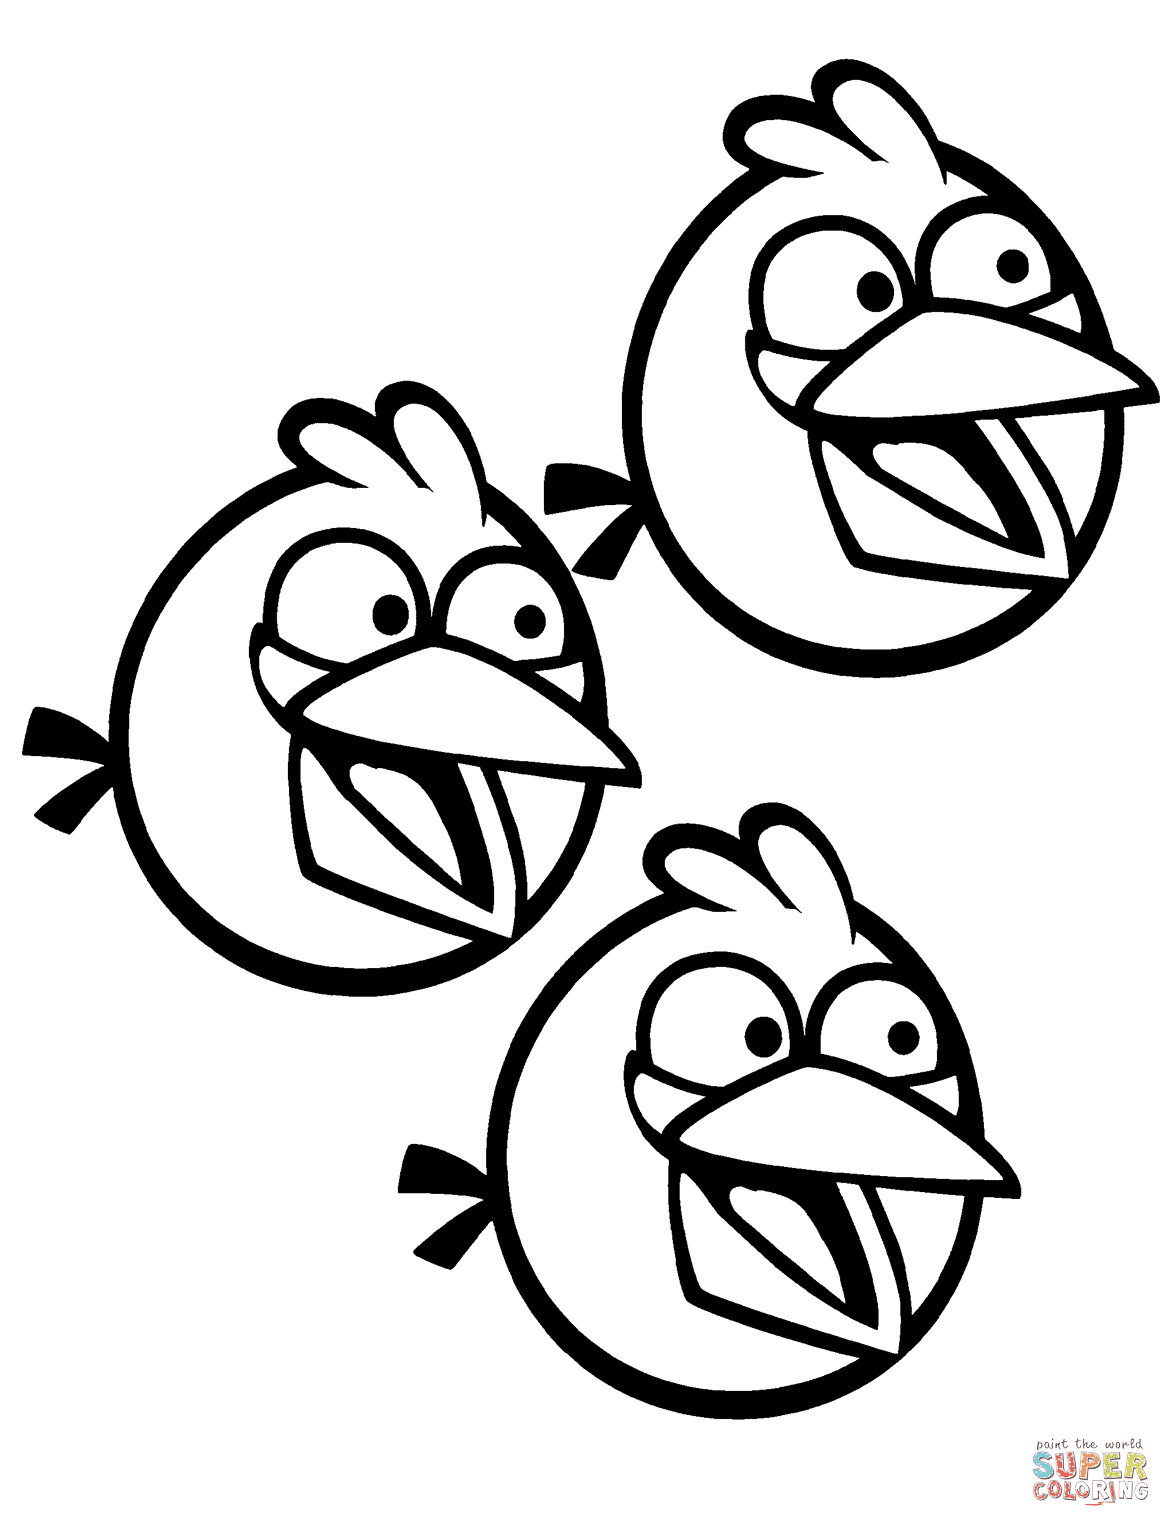 Angry Birds Stella Kleurplaten.Angry Birds Coloring Pages